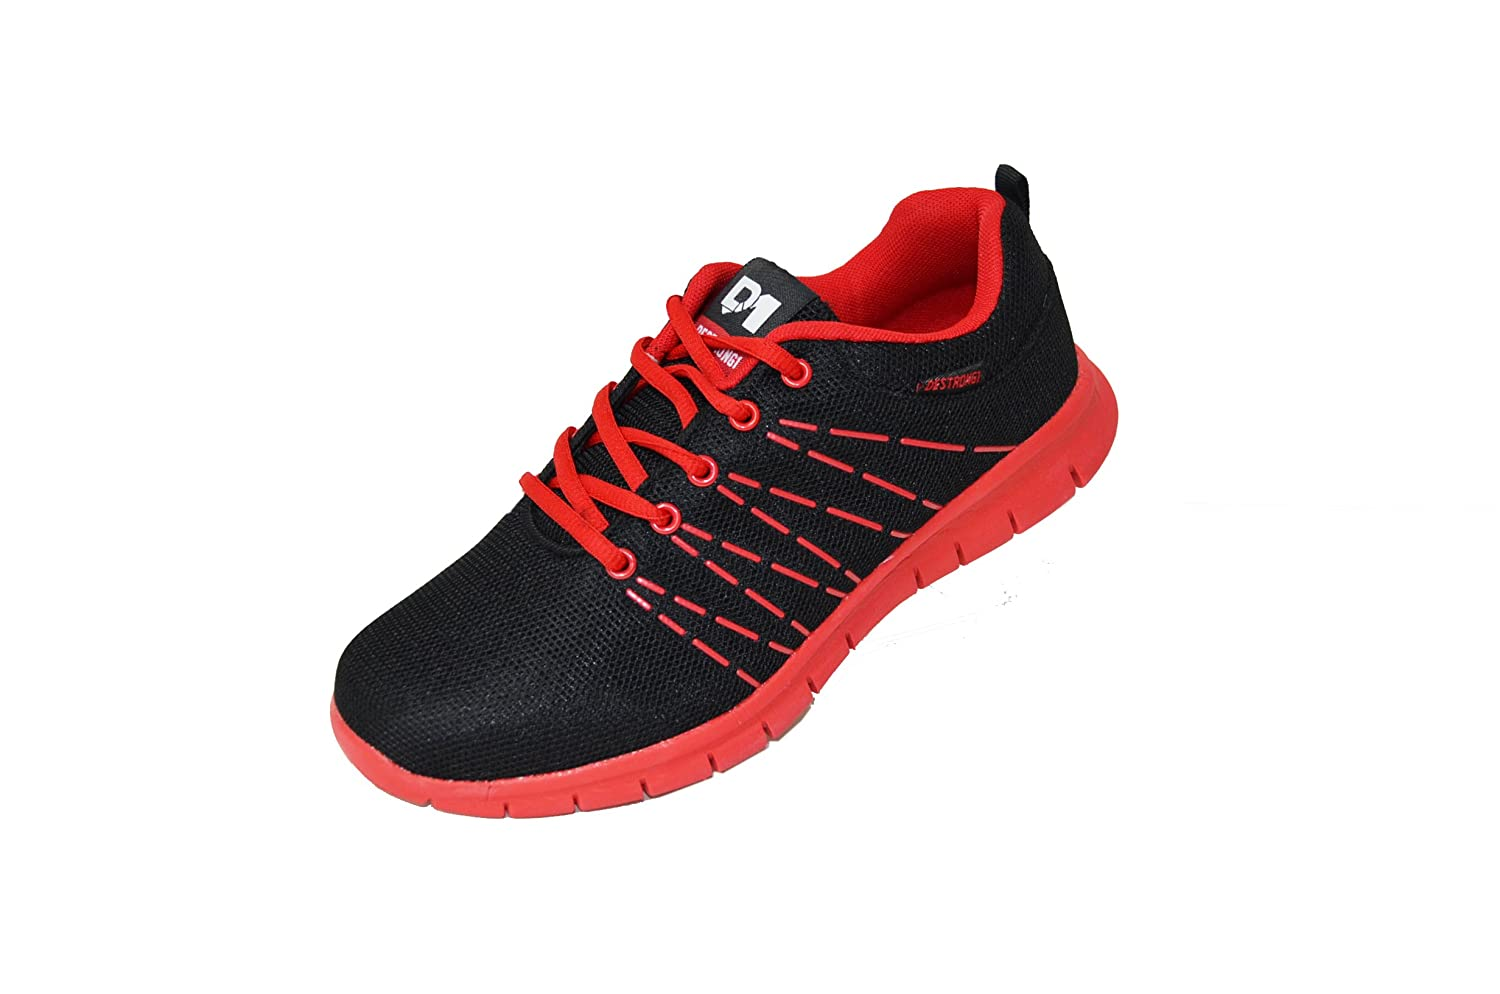 Amazon.com | Men's Lightweight Running Sneakers Athletic Shoes (SM-212)  Black/Red 7.5 M US | Shoes